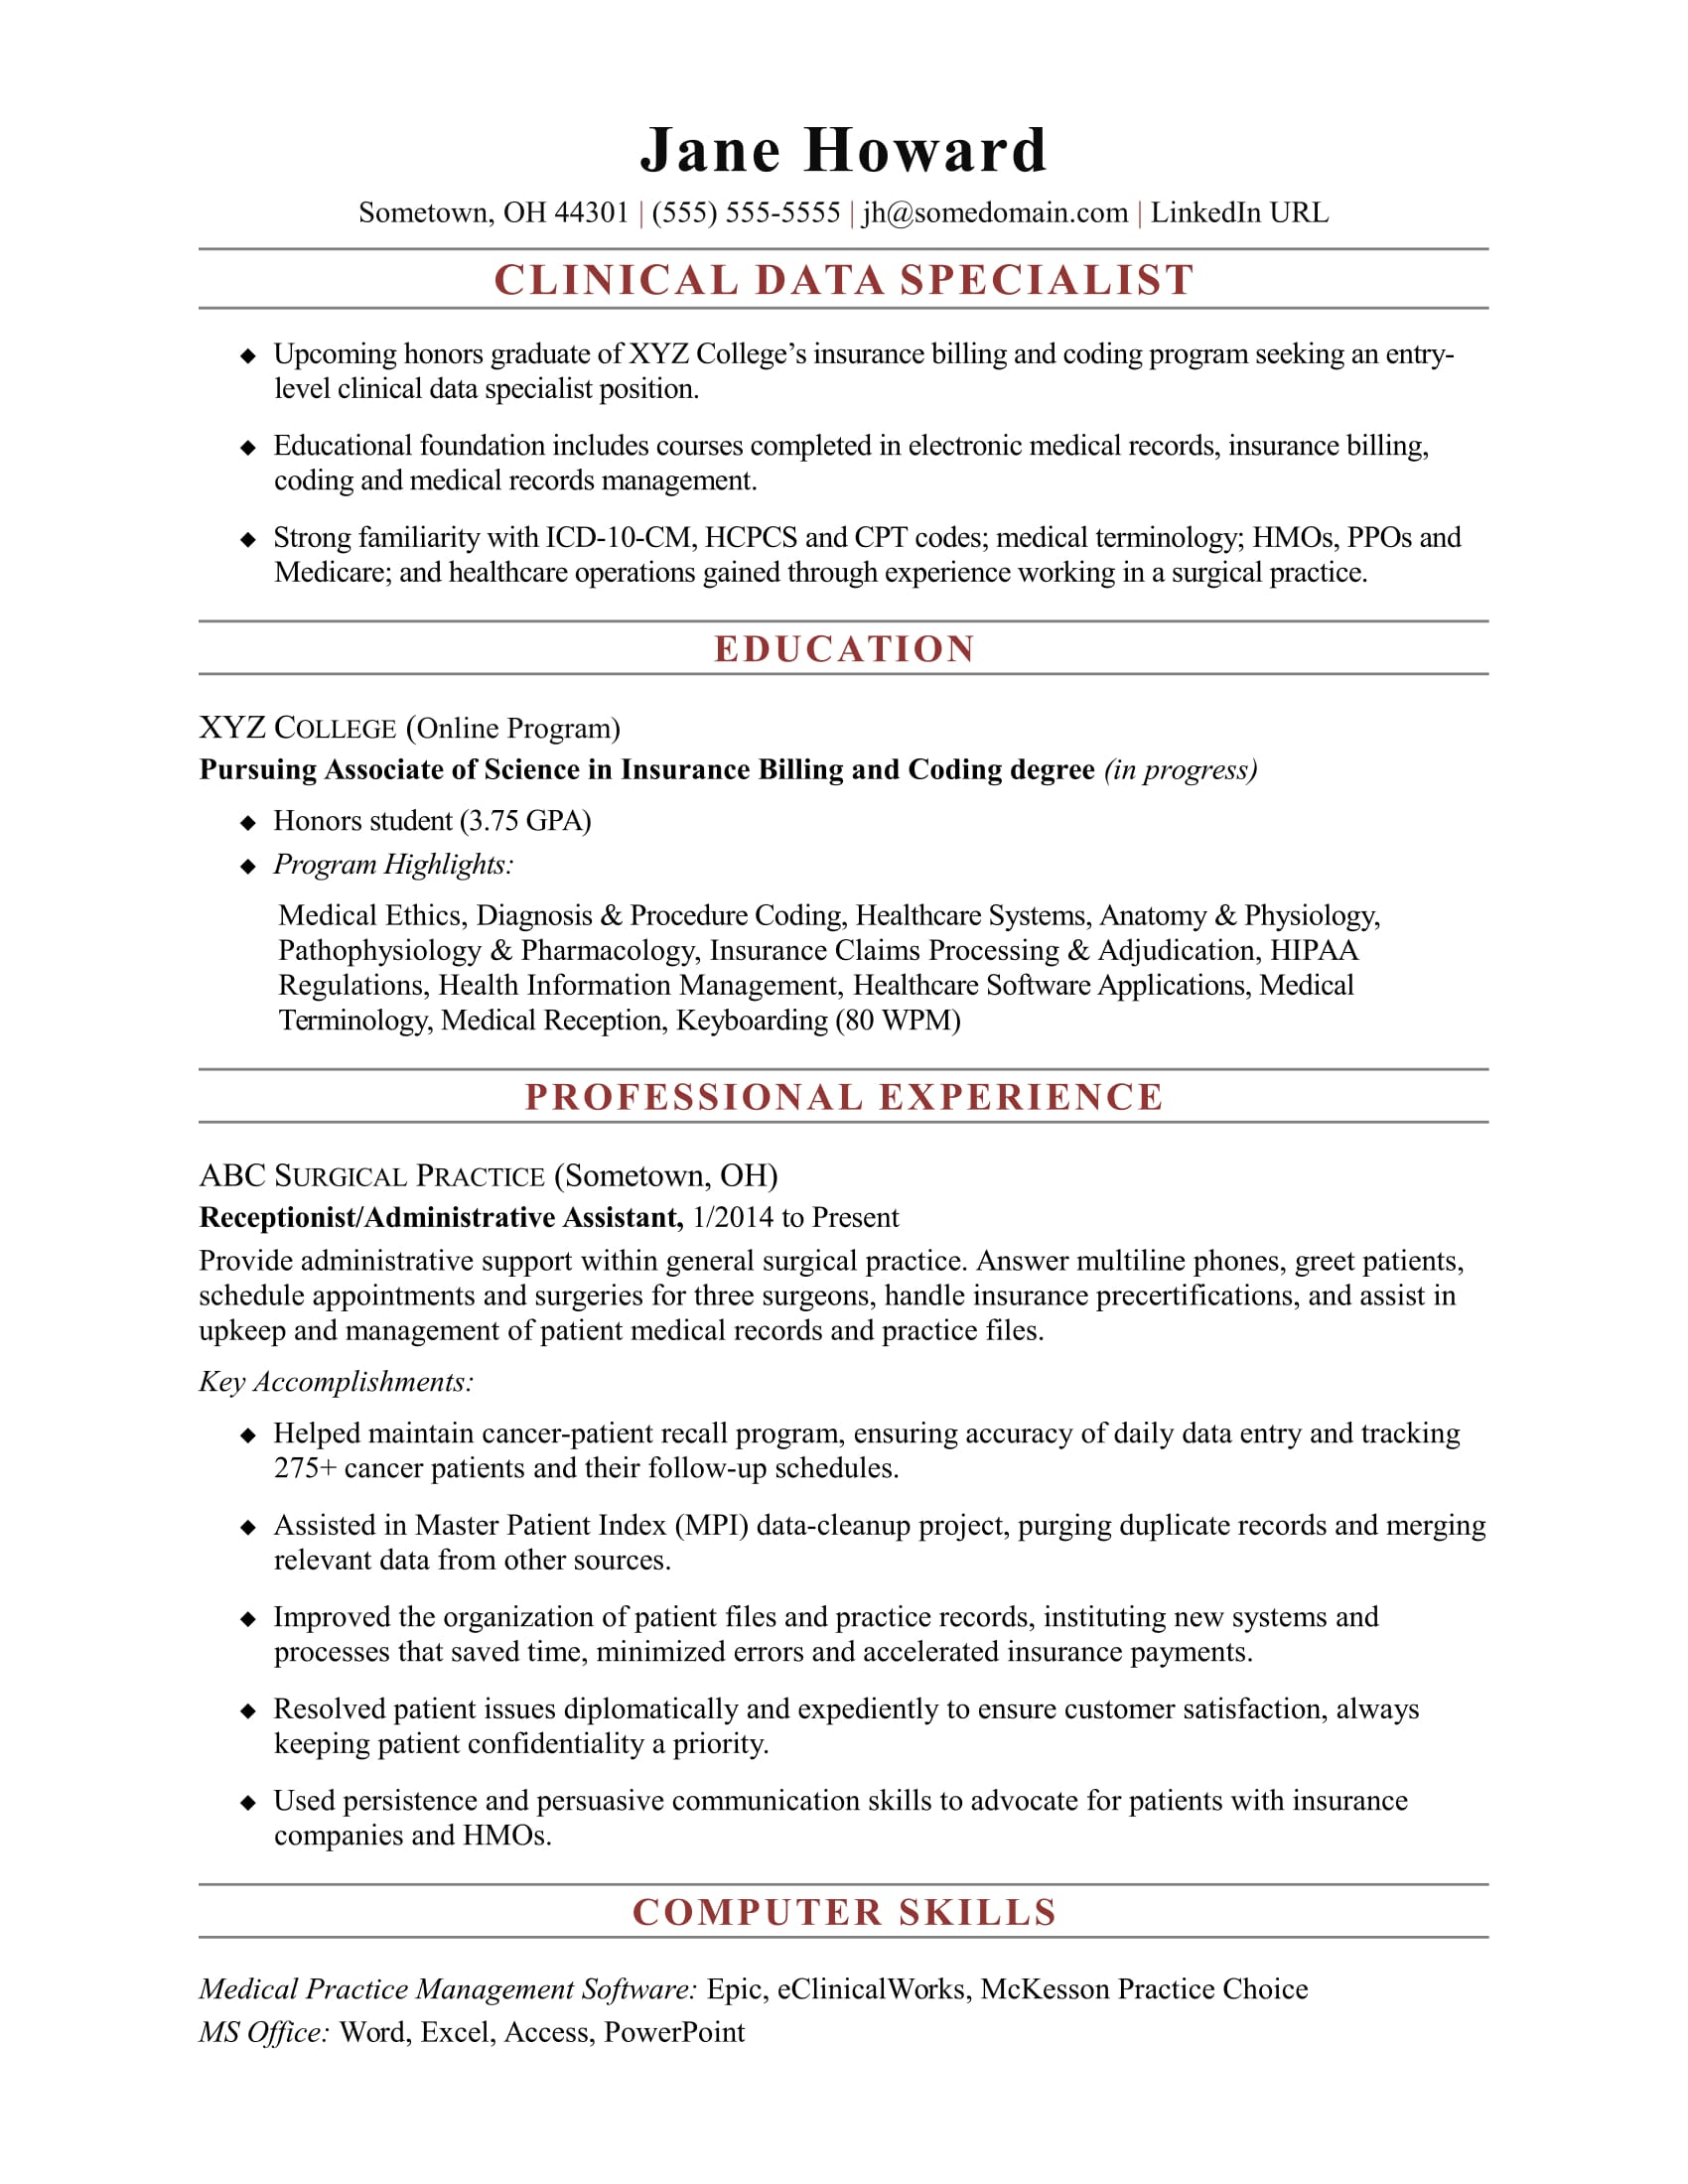 Entry Level Clinical Data Specialist Resume Sample